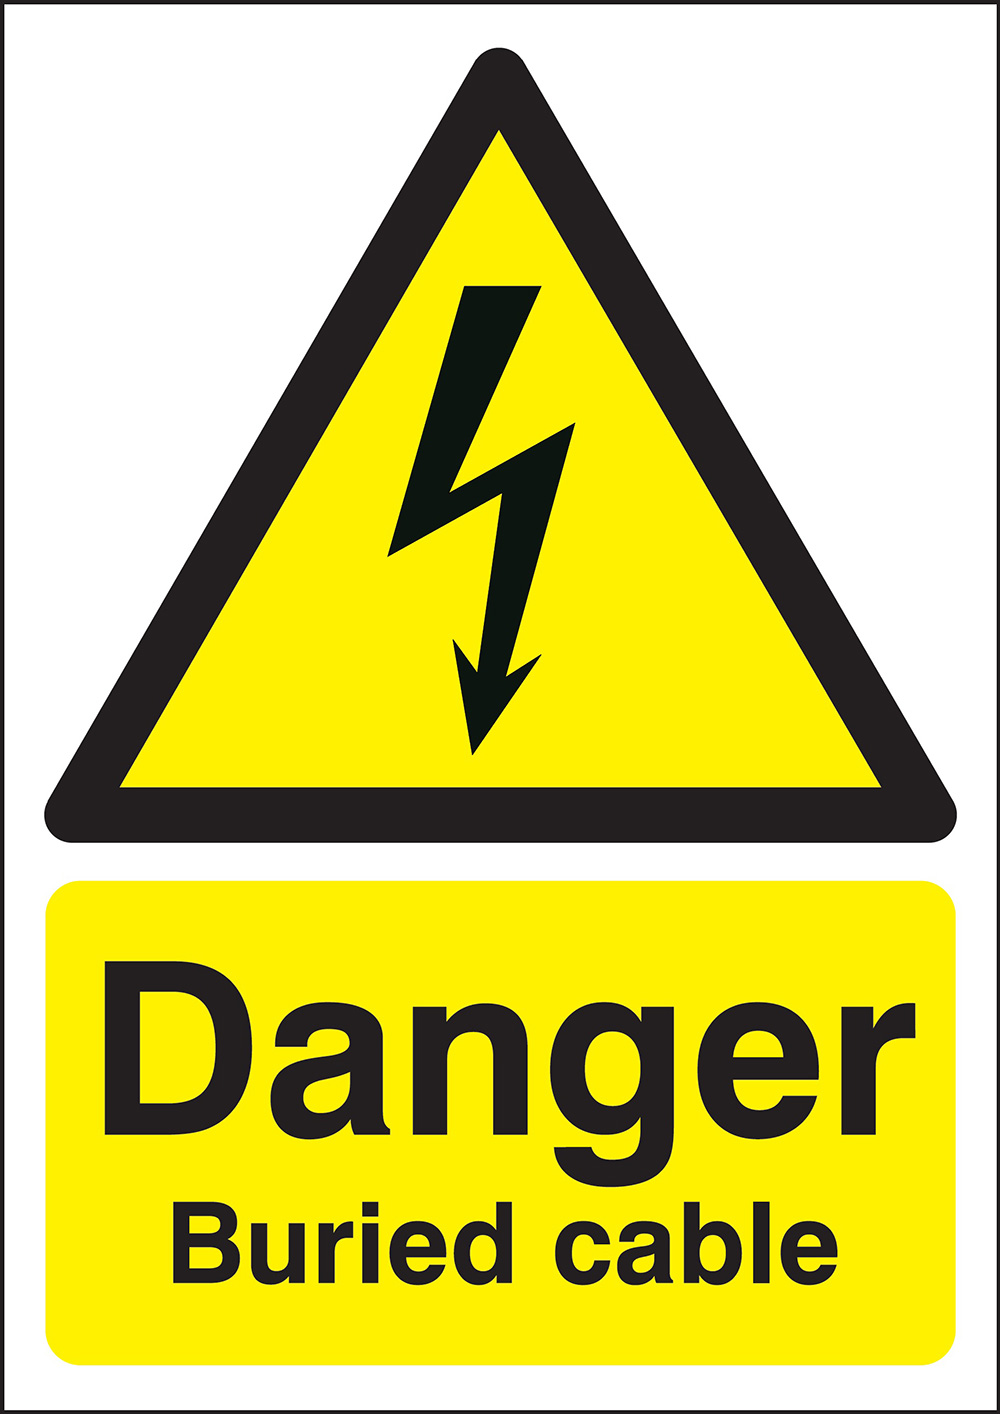 Danger Buried Cable   420x297mm 1.2mm Rigid Plastic Safety Sign